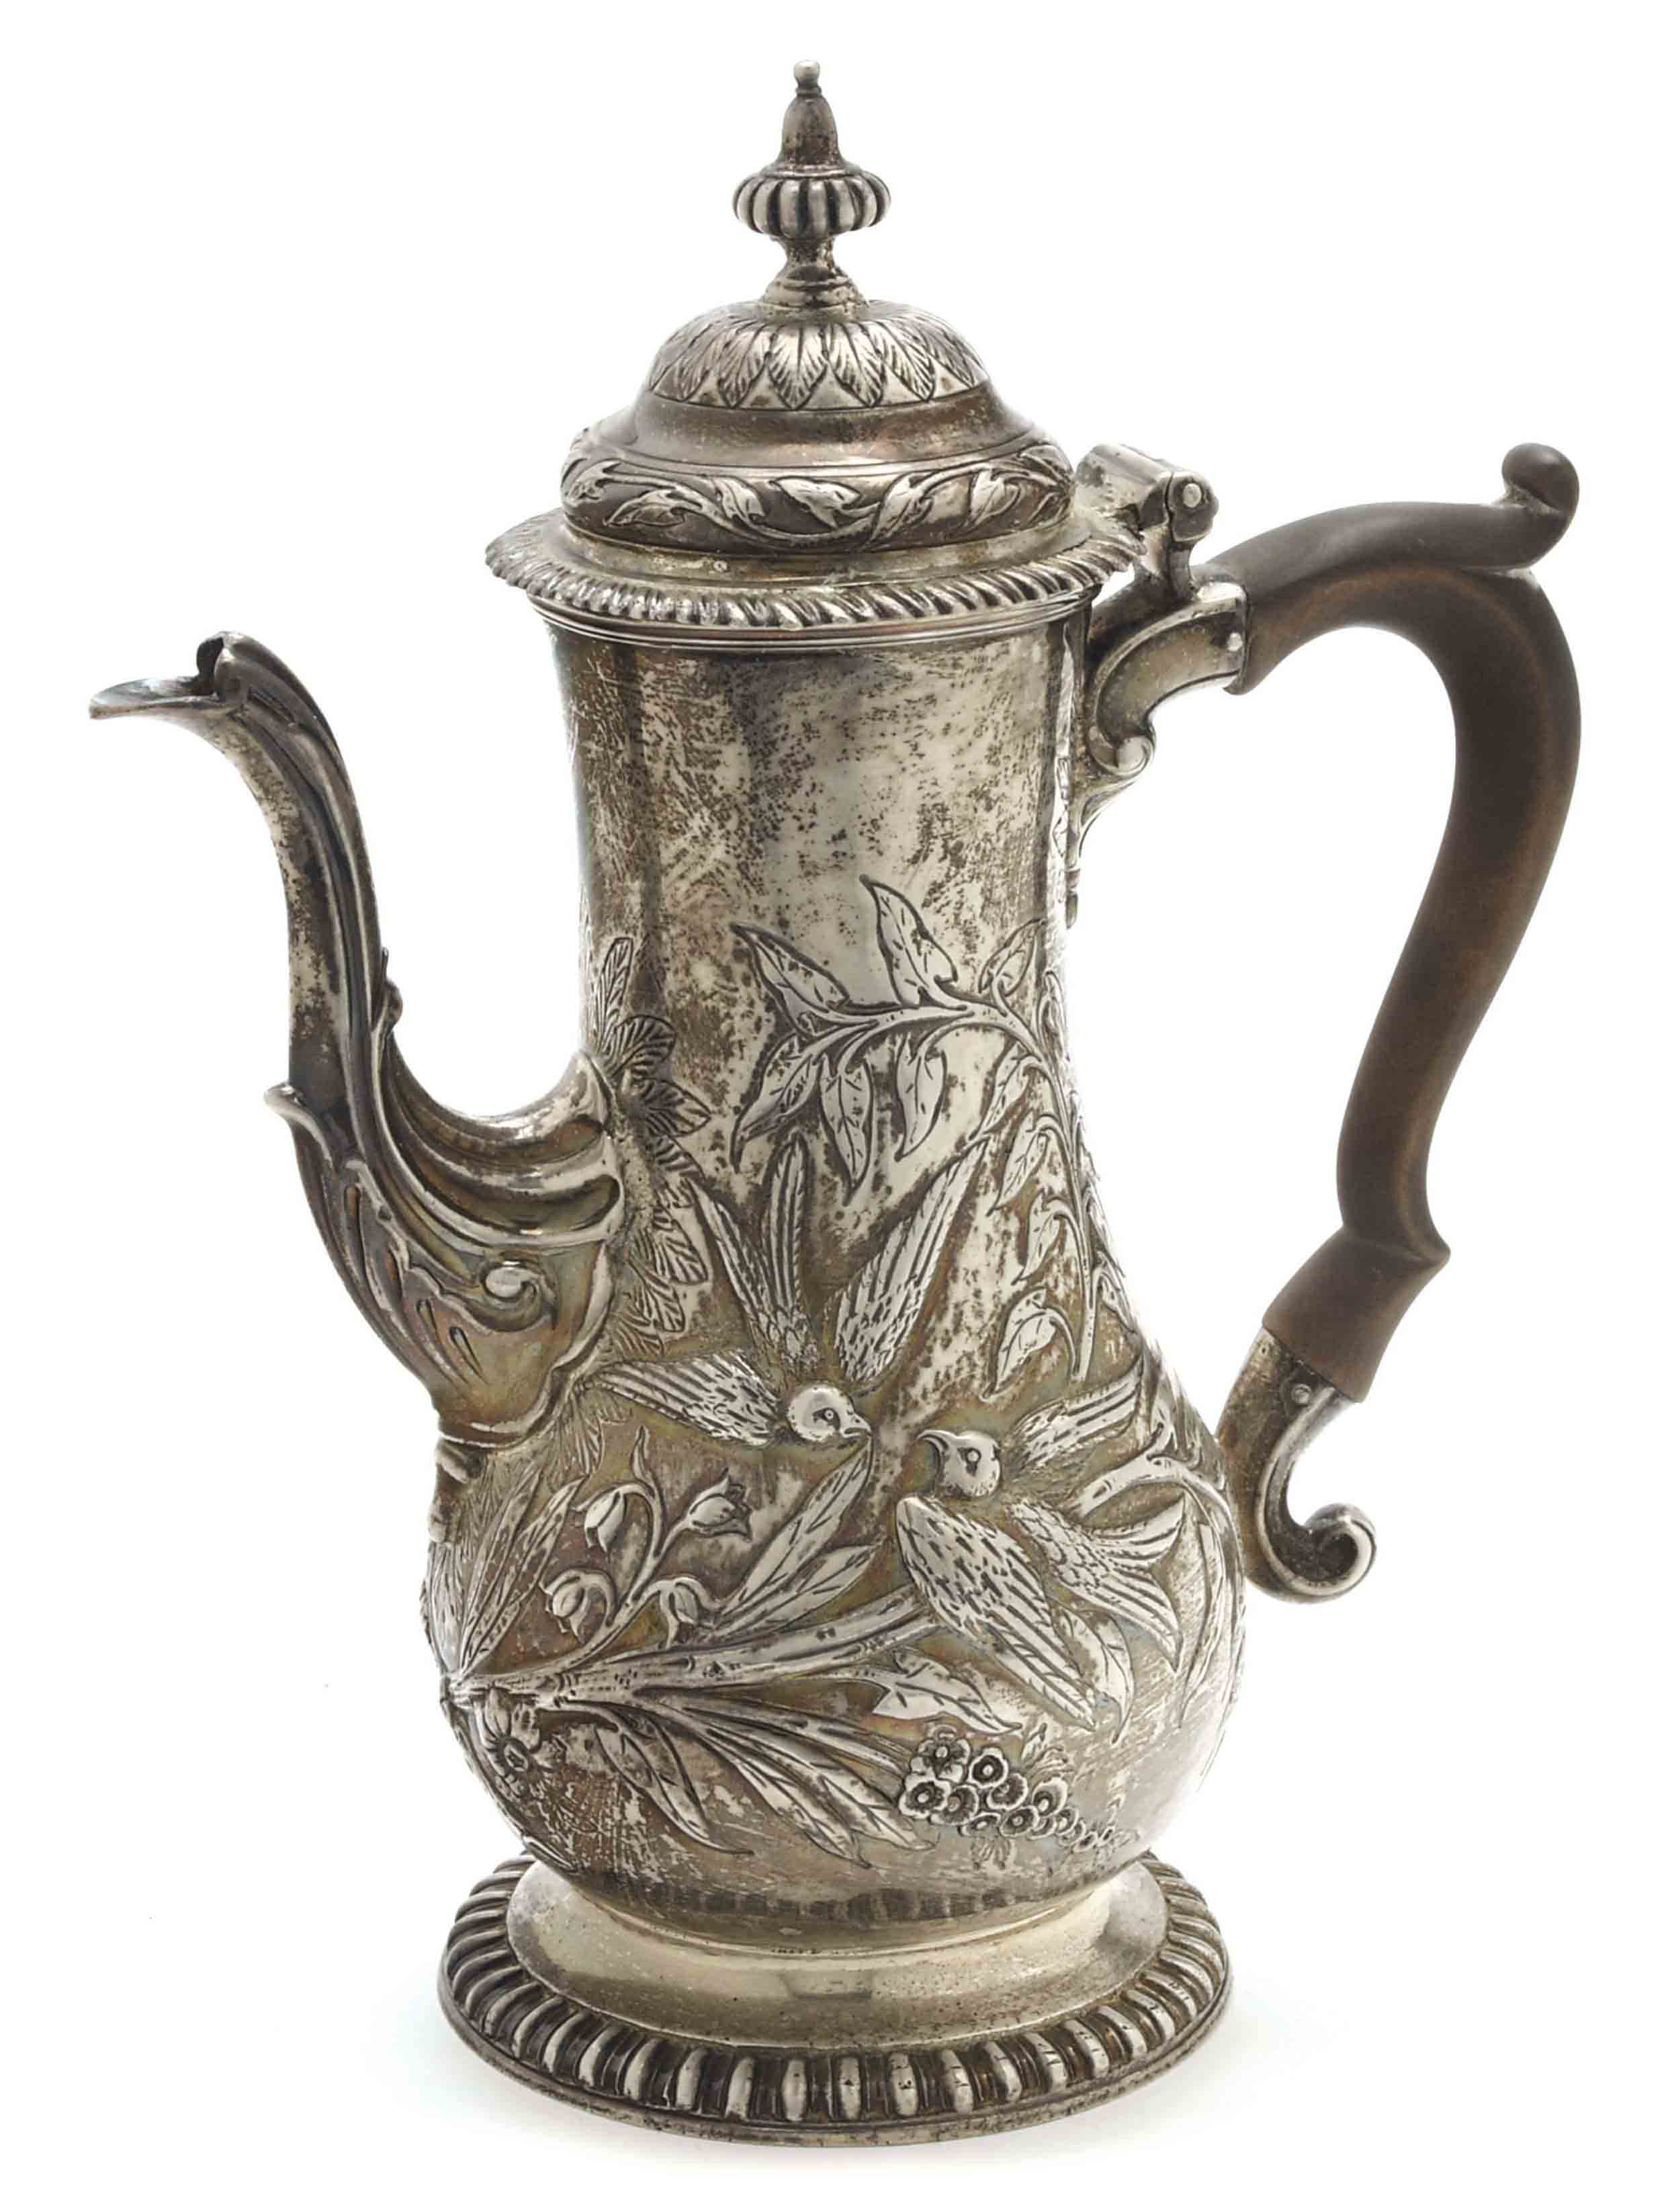 A GEORGE III SILVER COFFEE POT WITH WOOD HANDLE,